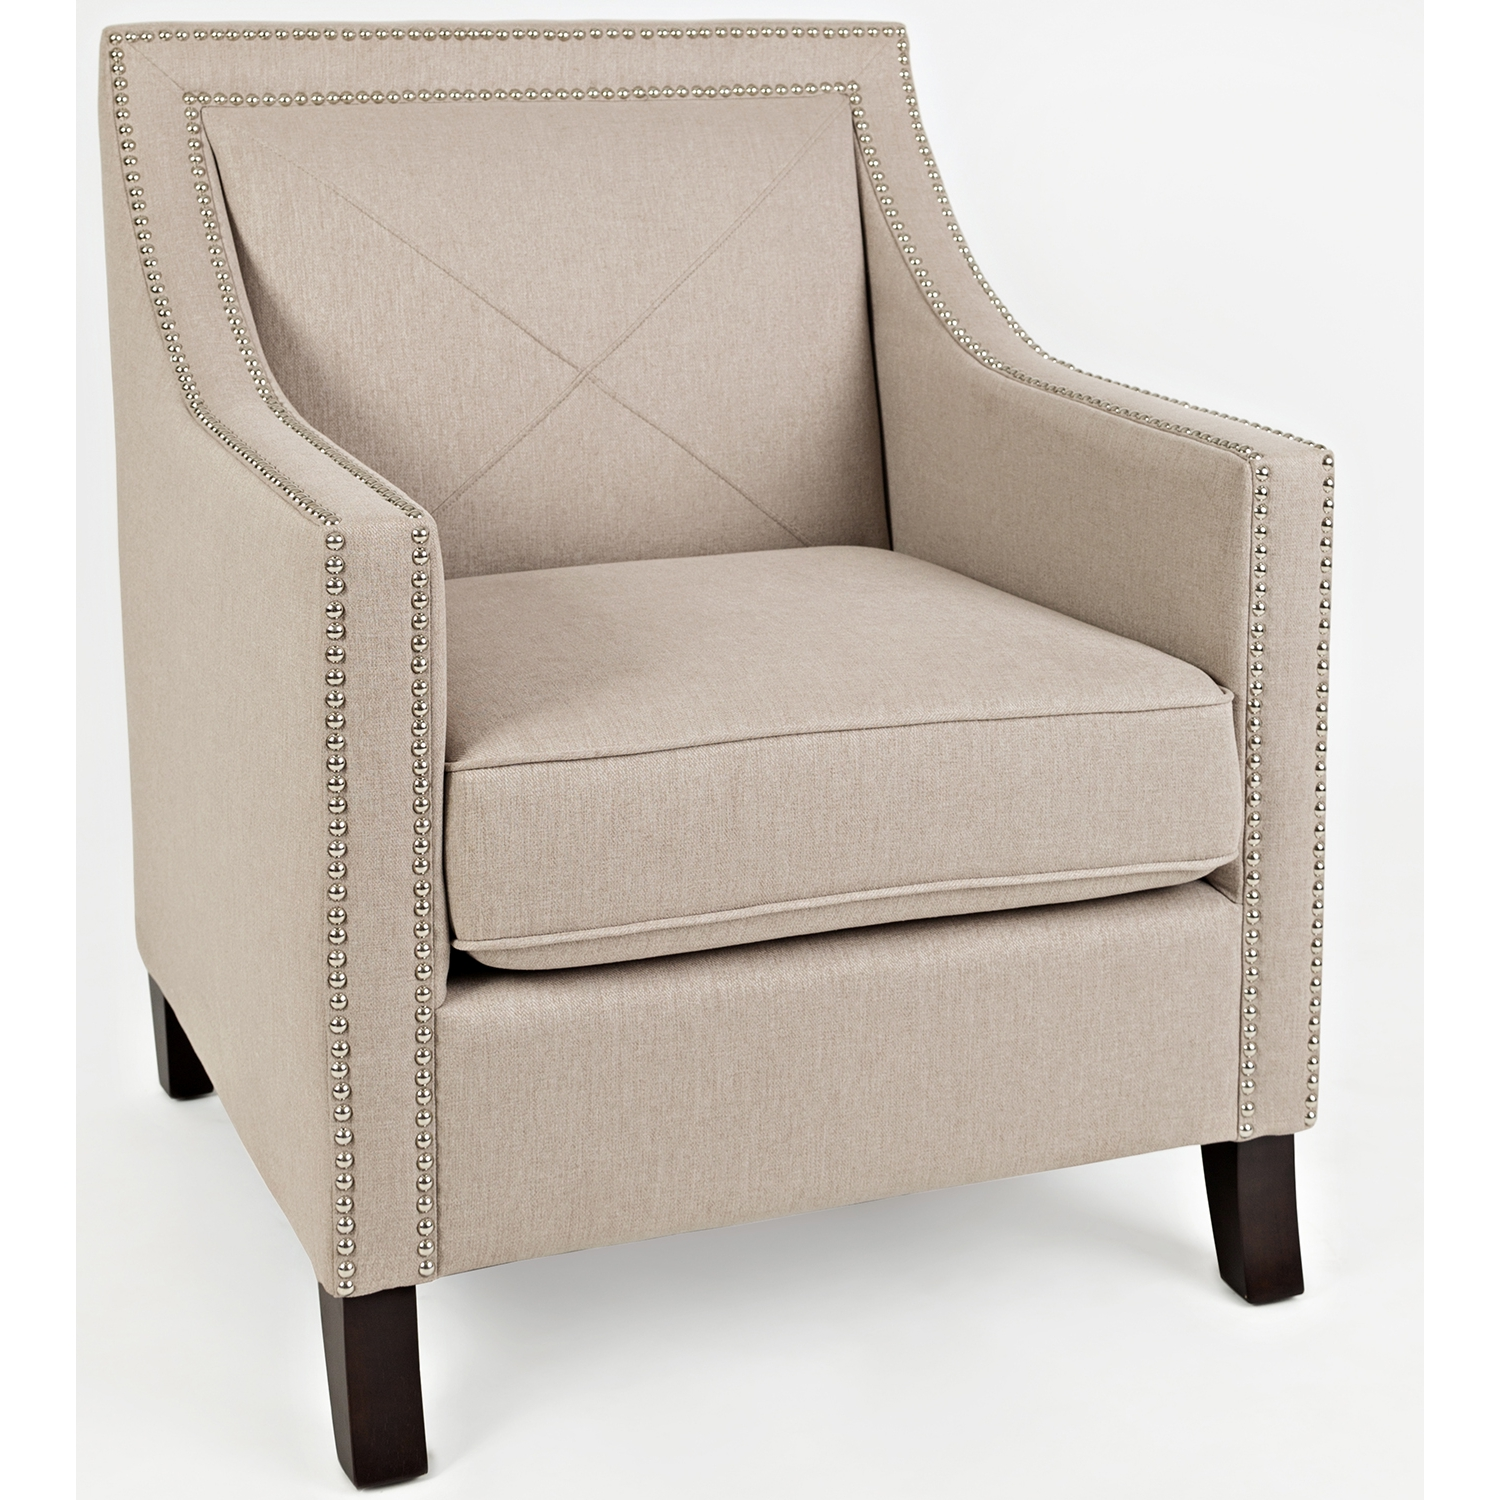 Luca Accent Chair In Easy Living Taupe Fabric W/ Nailhead Trim